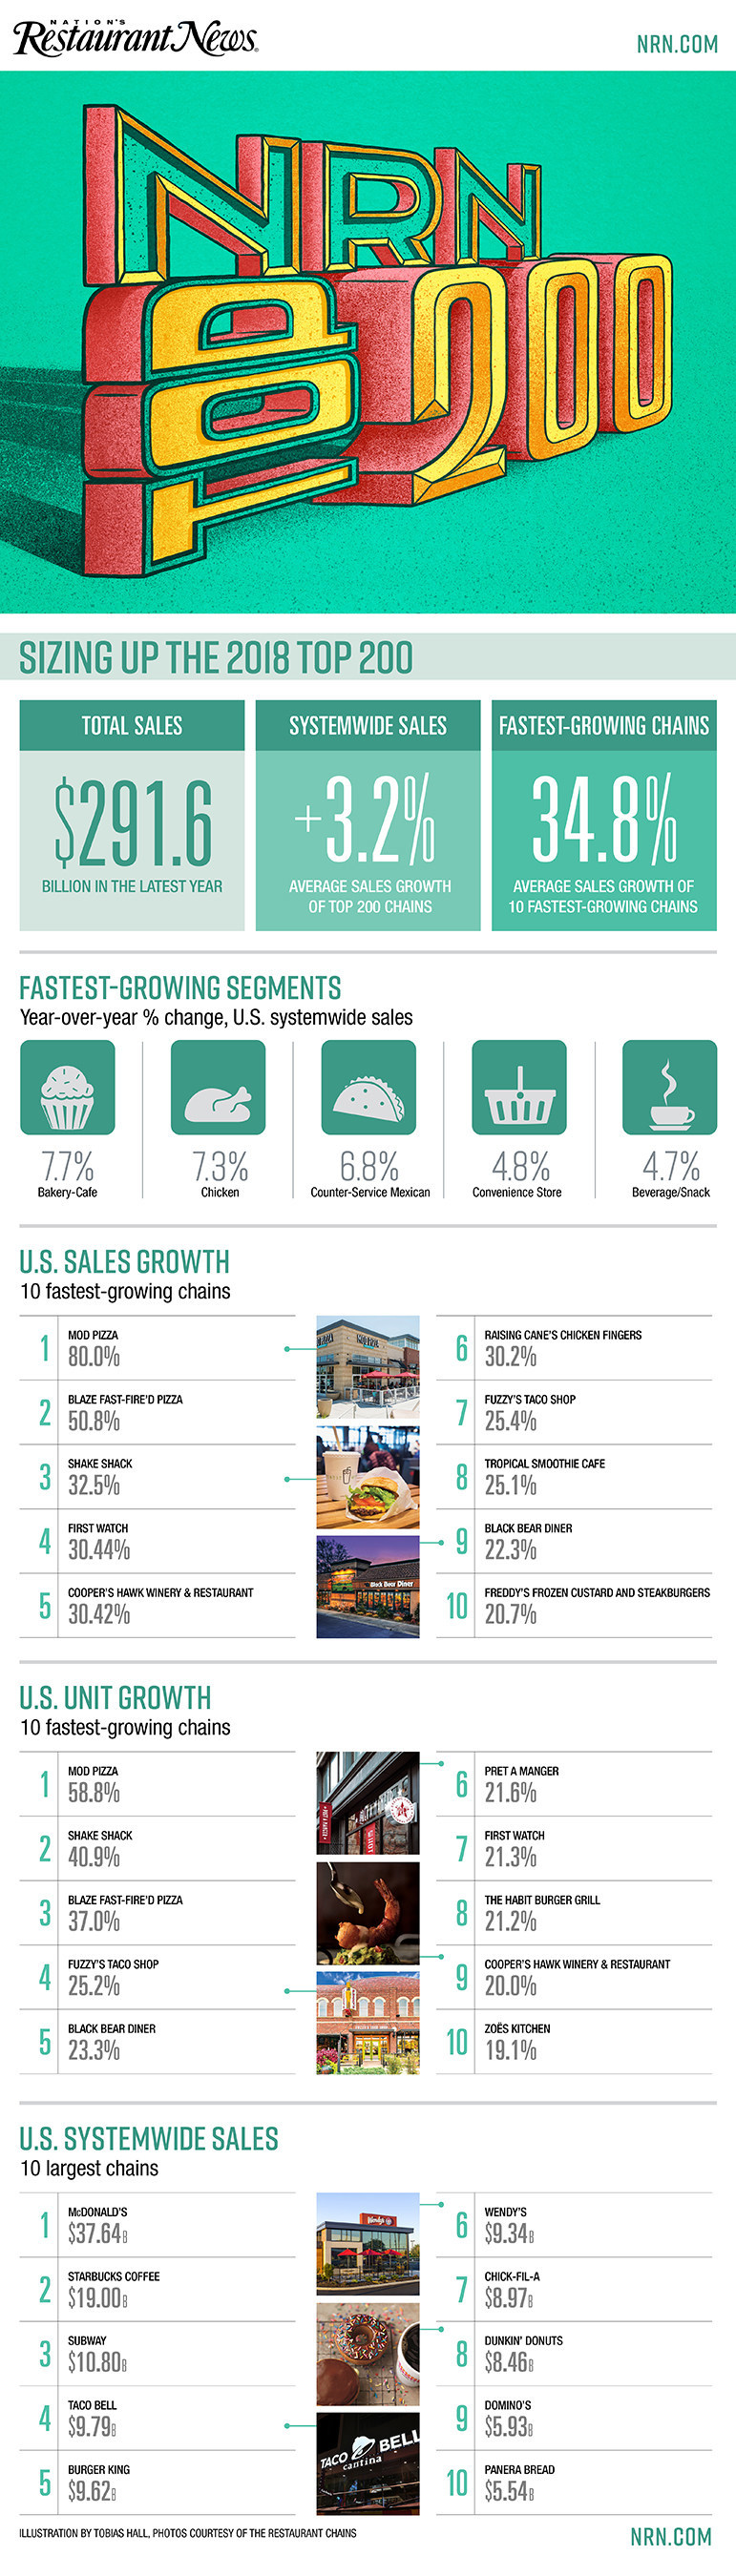 Nation's Restaurant News Unveils Fastest-Growing Restaurants Report (PRNewsfoto/Nation's Restaurant News)